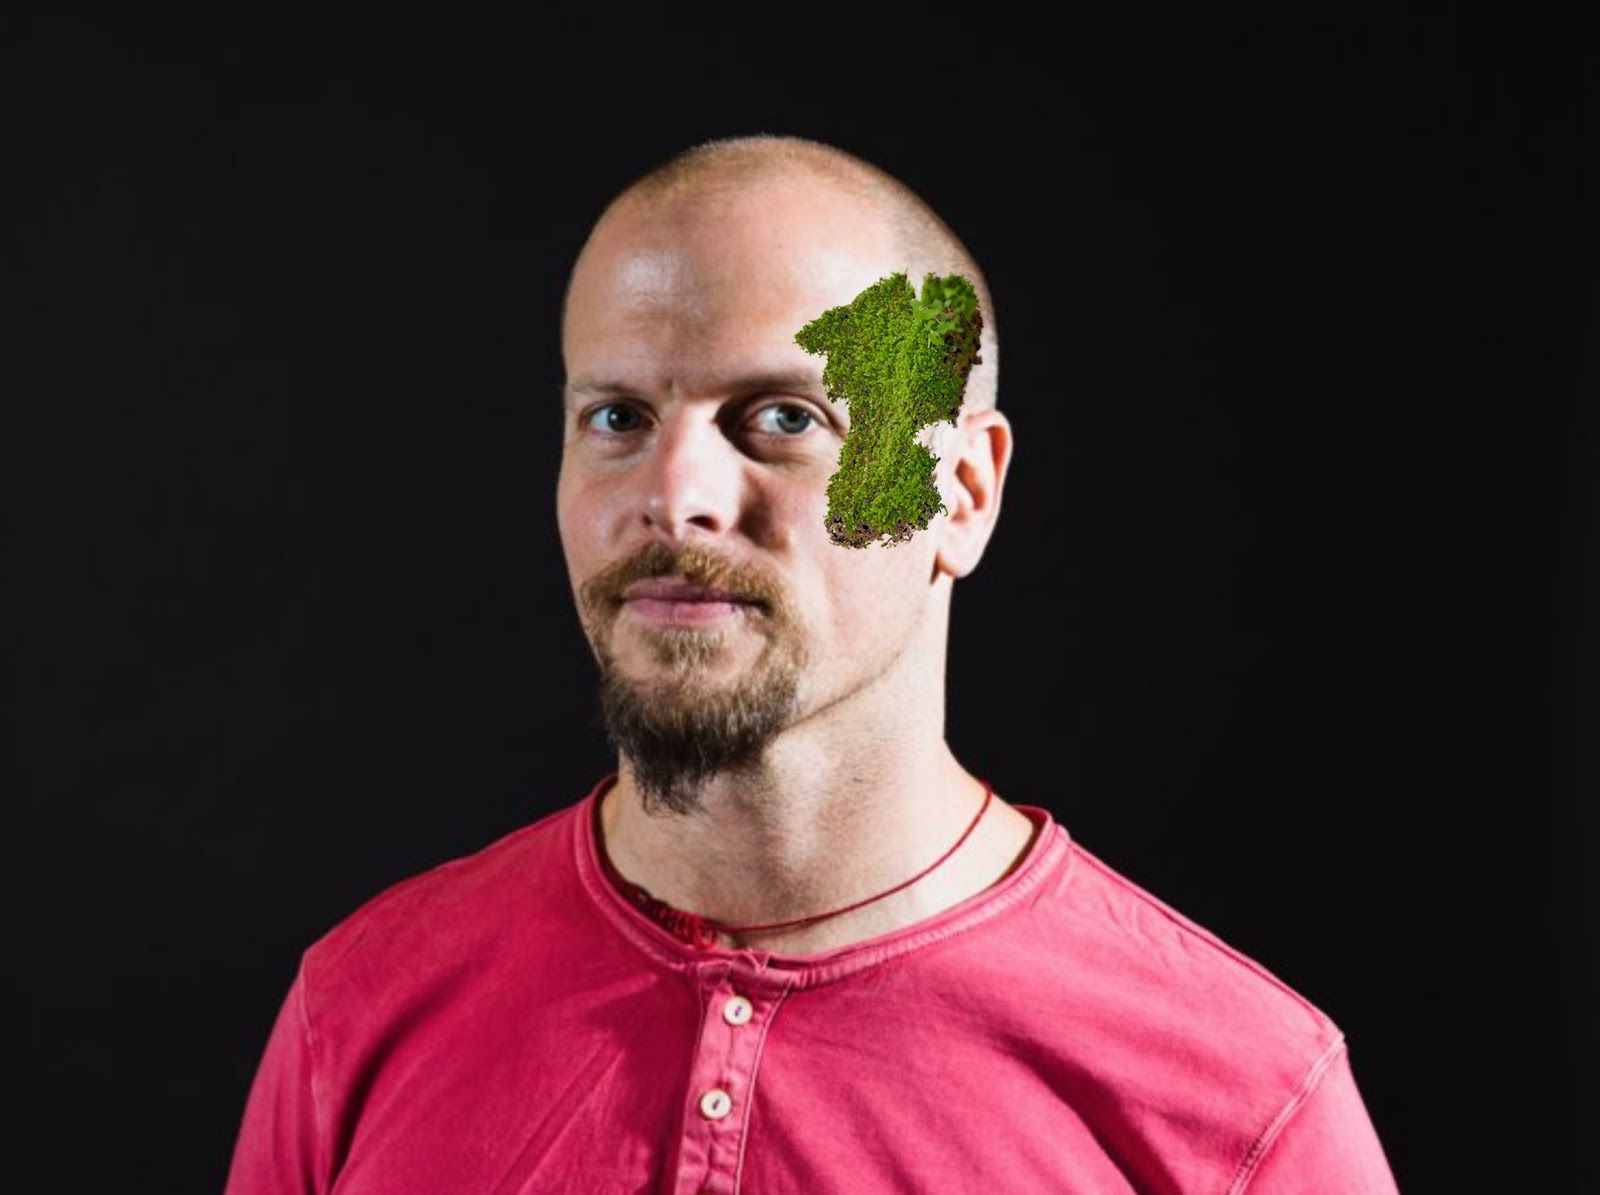 Moss growing on north side of Tim Ferriss